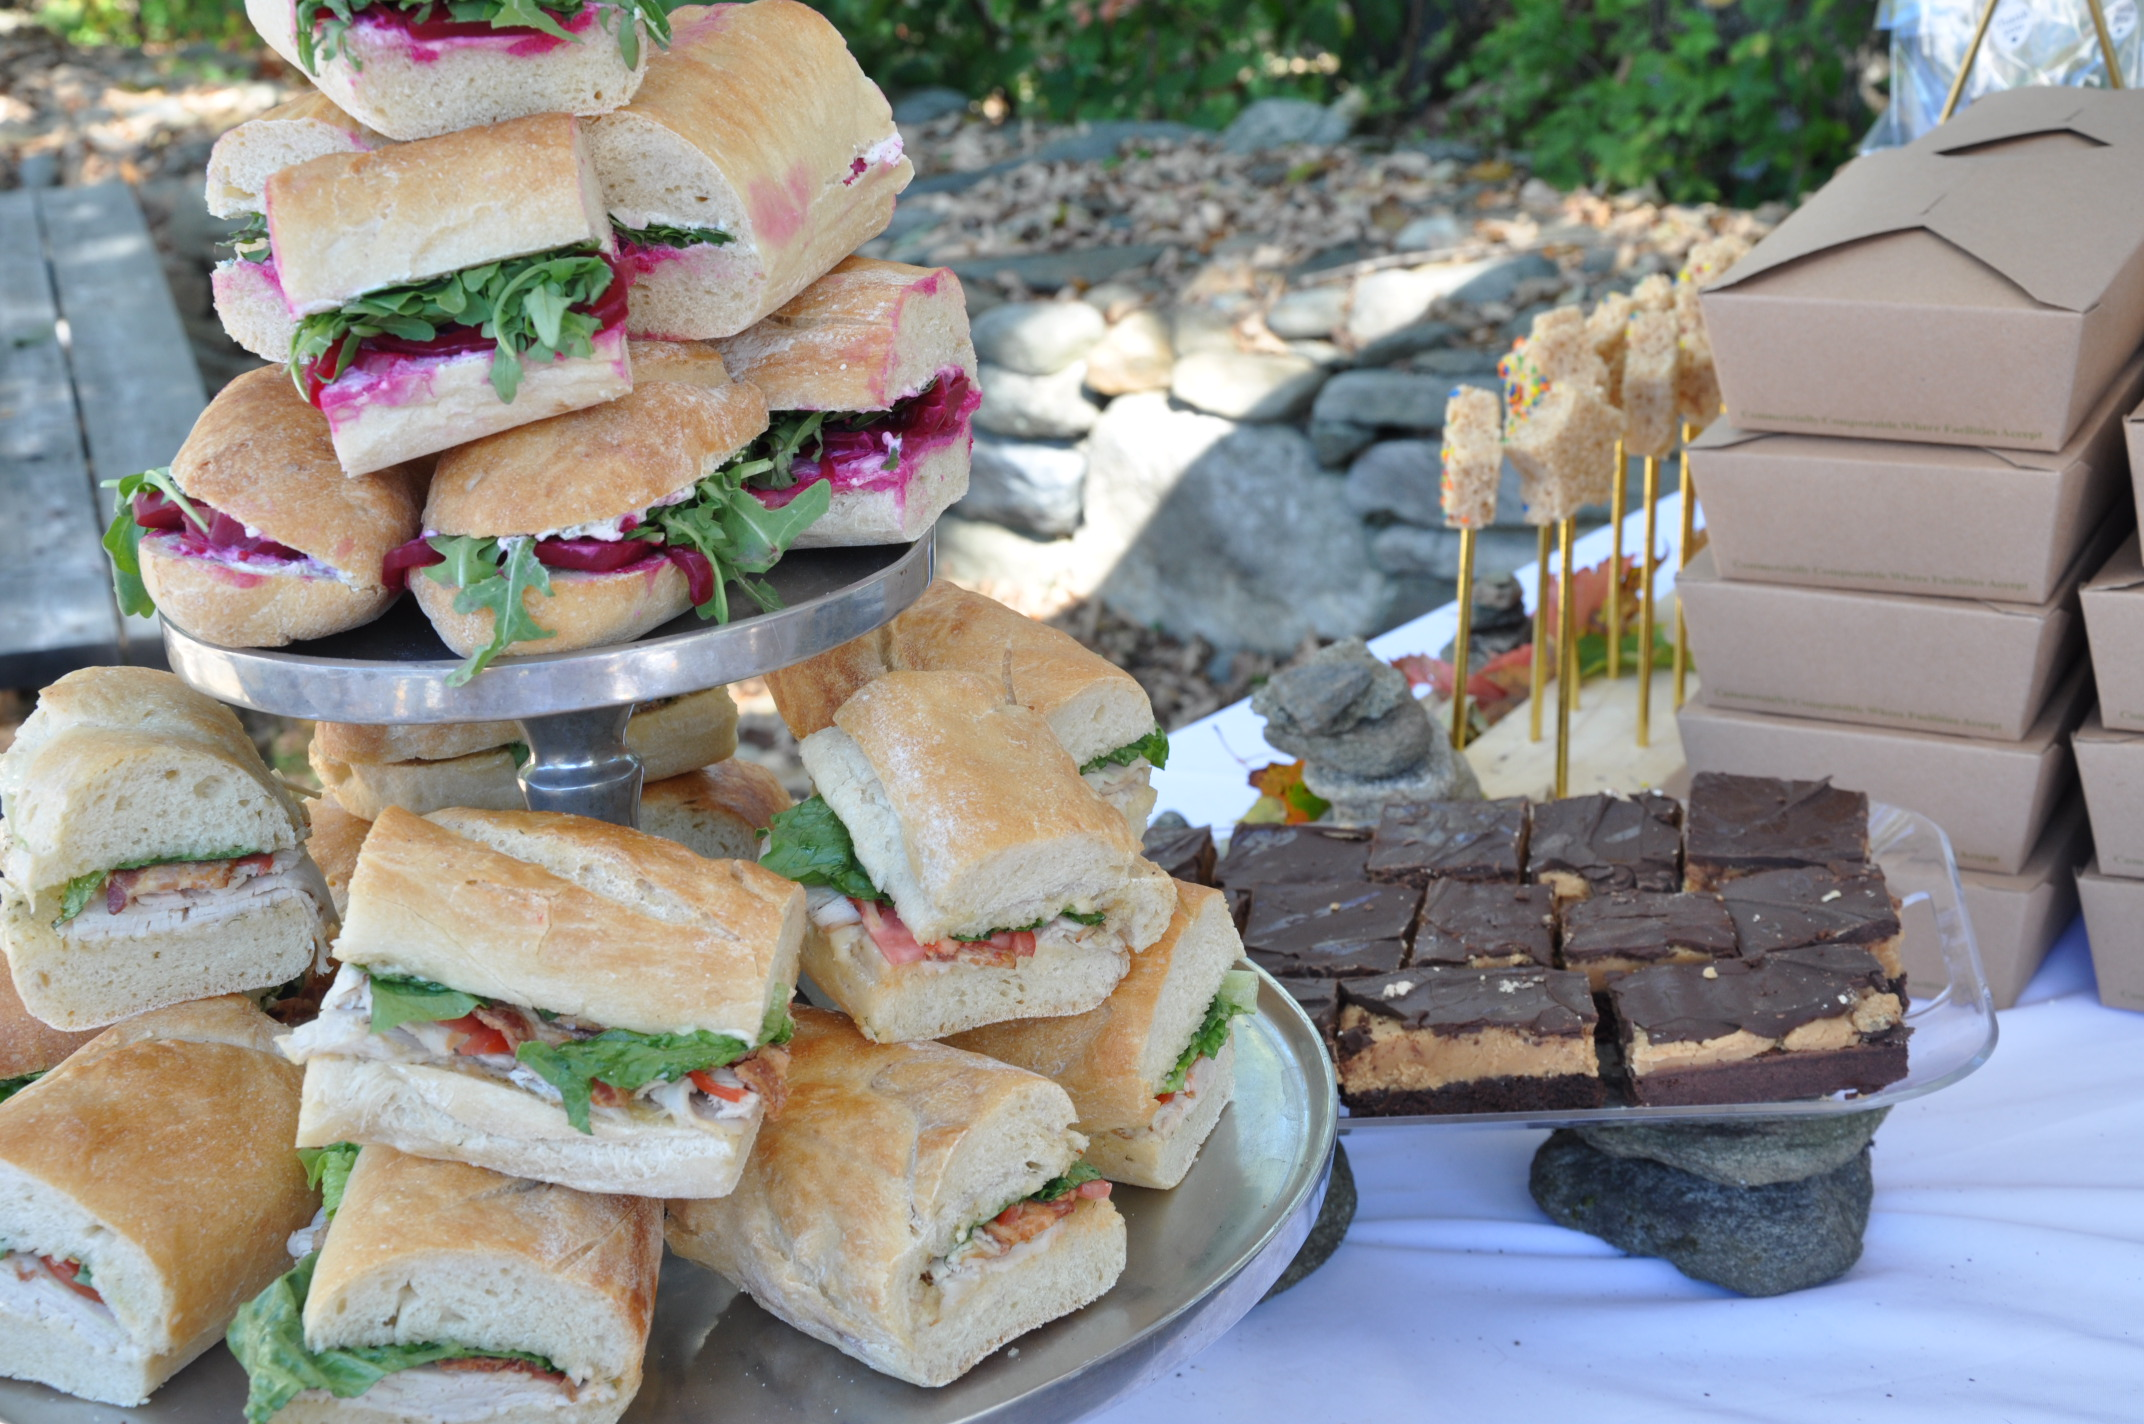 MKT: Grafton sold fairy-inspired treats and fresh sandwiches and salads